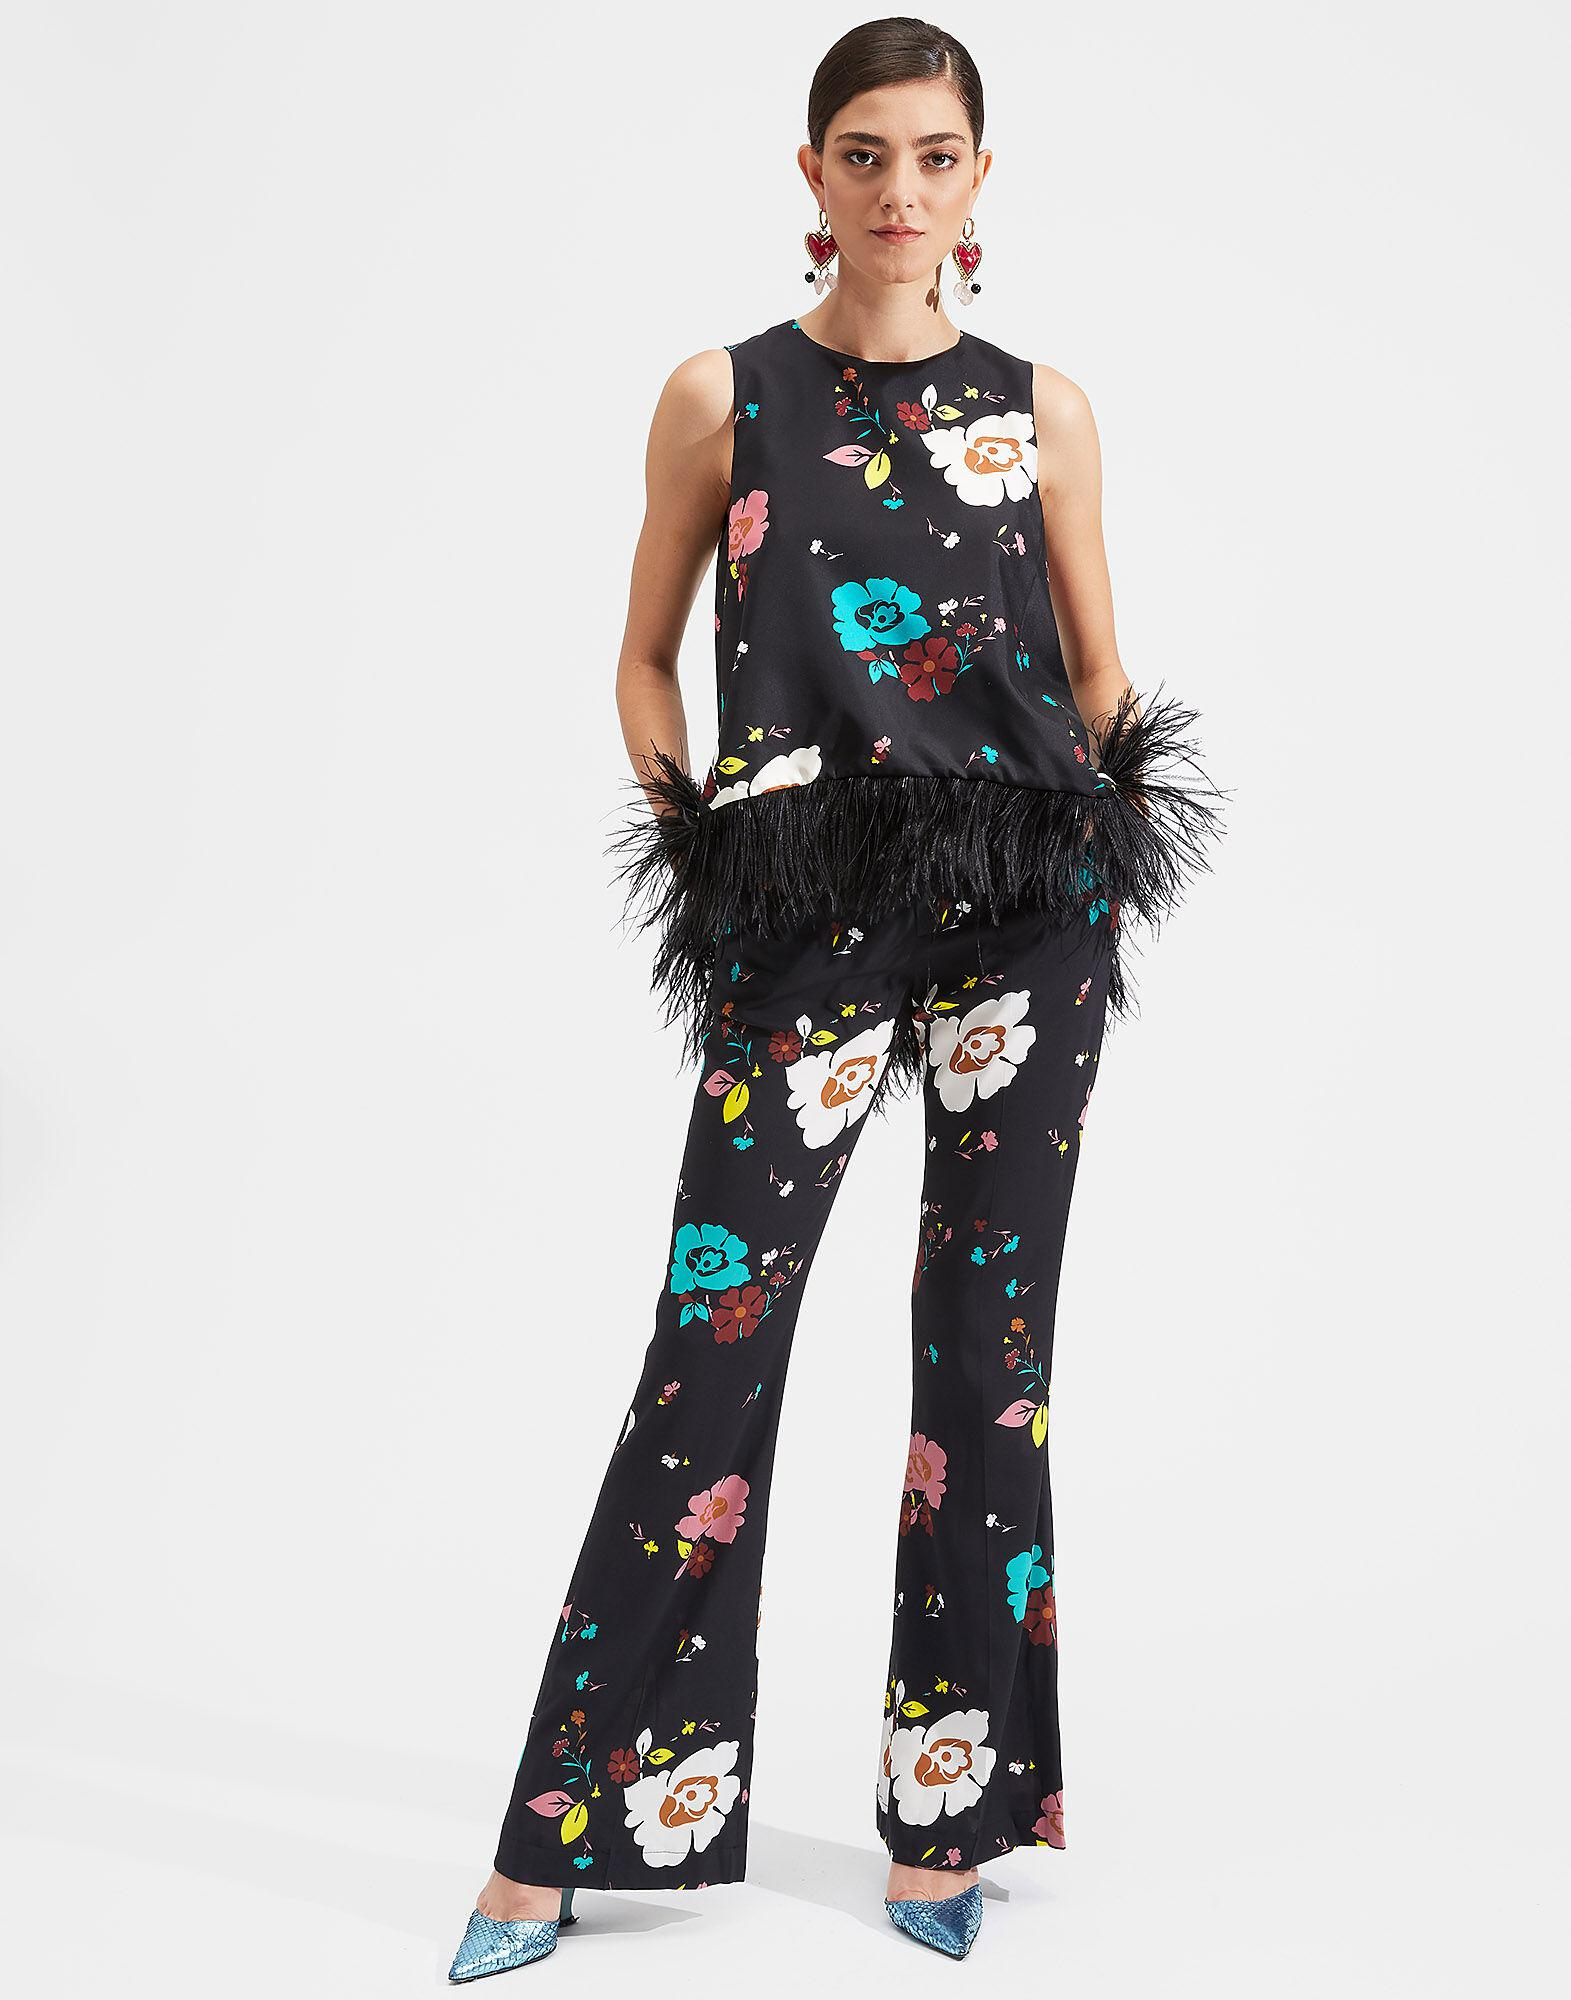 La Scala Top (With Feathers)